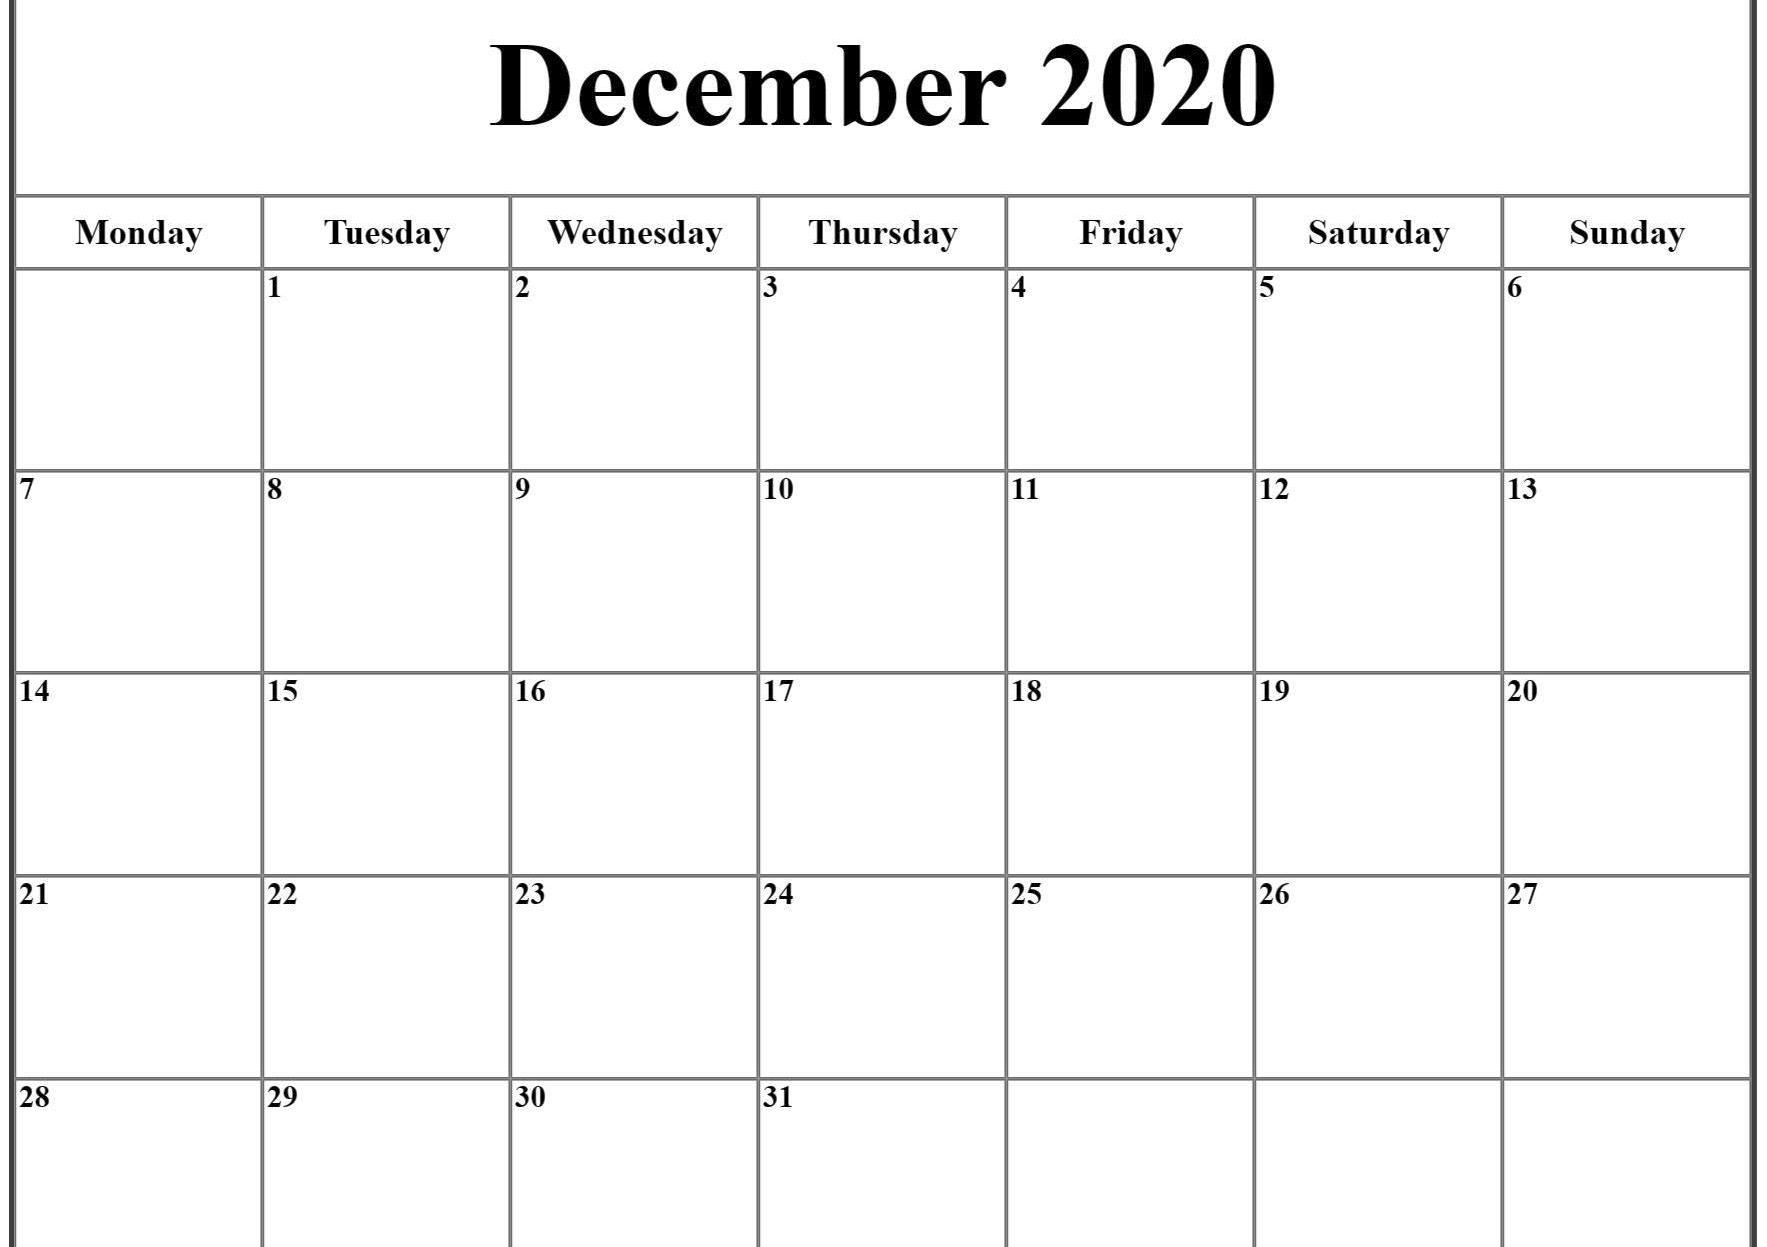 December 2020 Calendar Pdf, Word, Excel Template | Excel